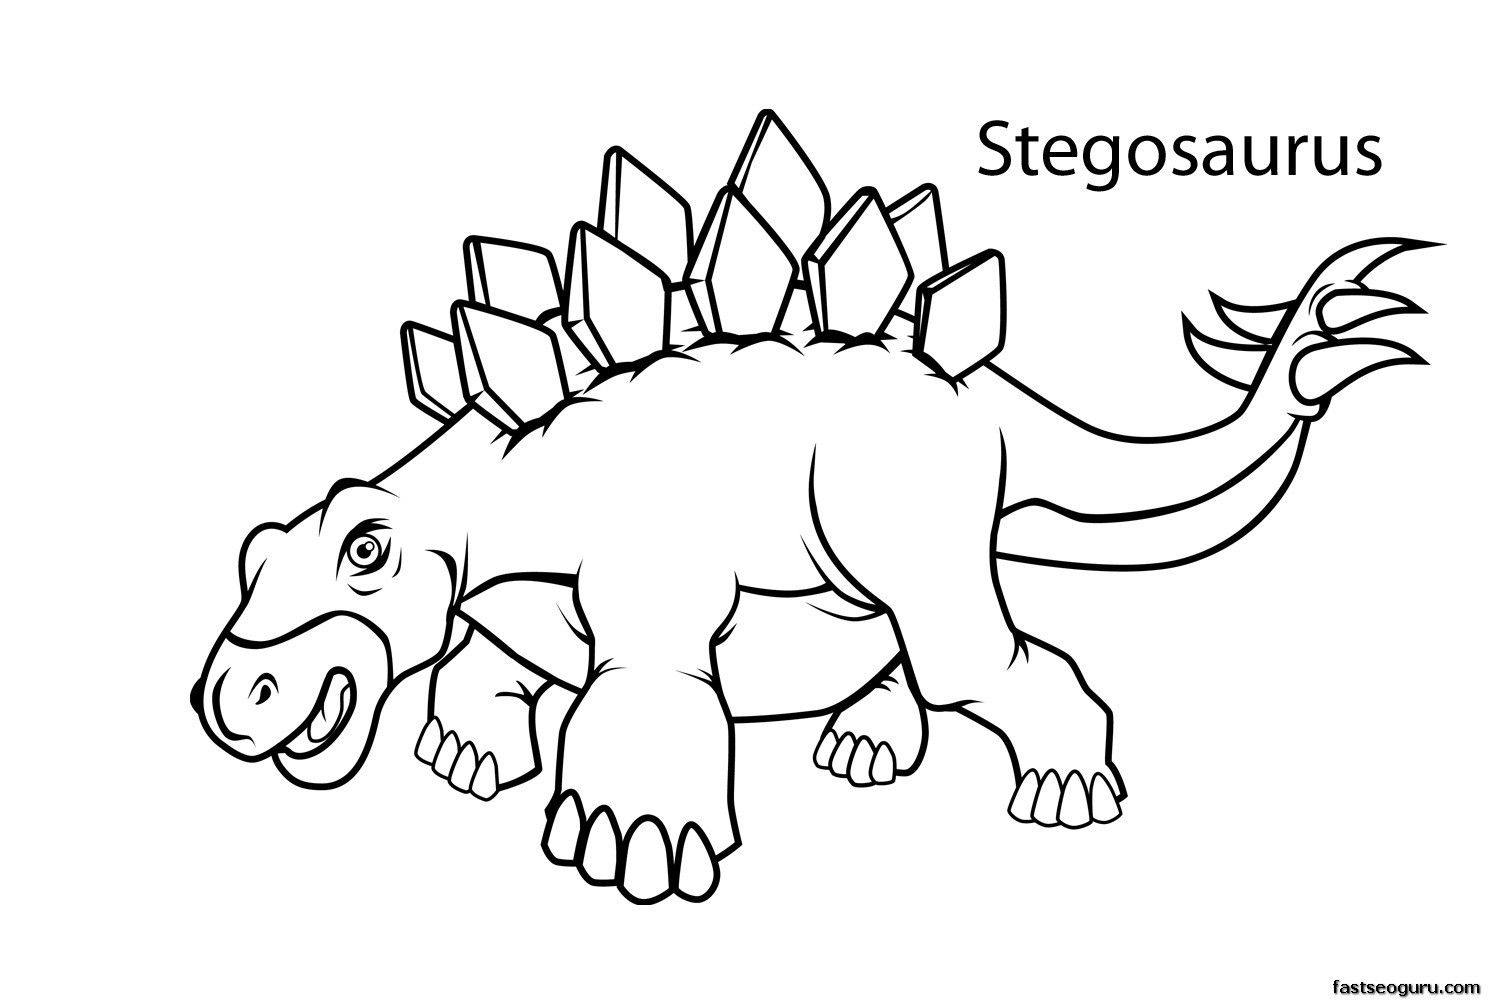 Lovecoloring Com Dinosaur Coloring Pages Dinosaur Coloring Name Coloring Pages